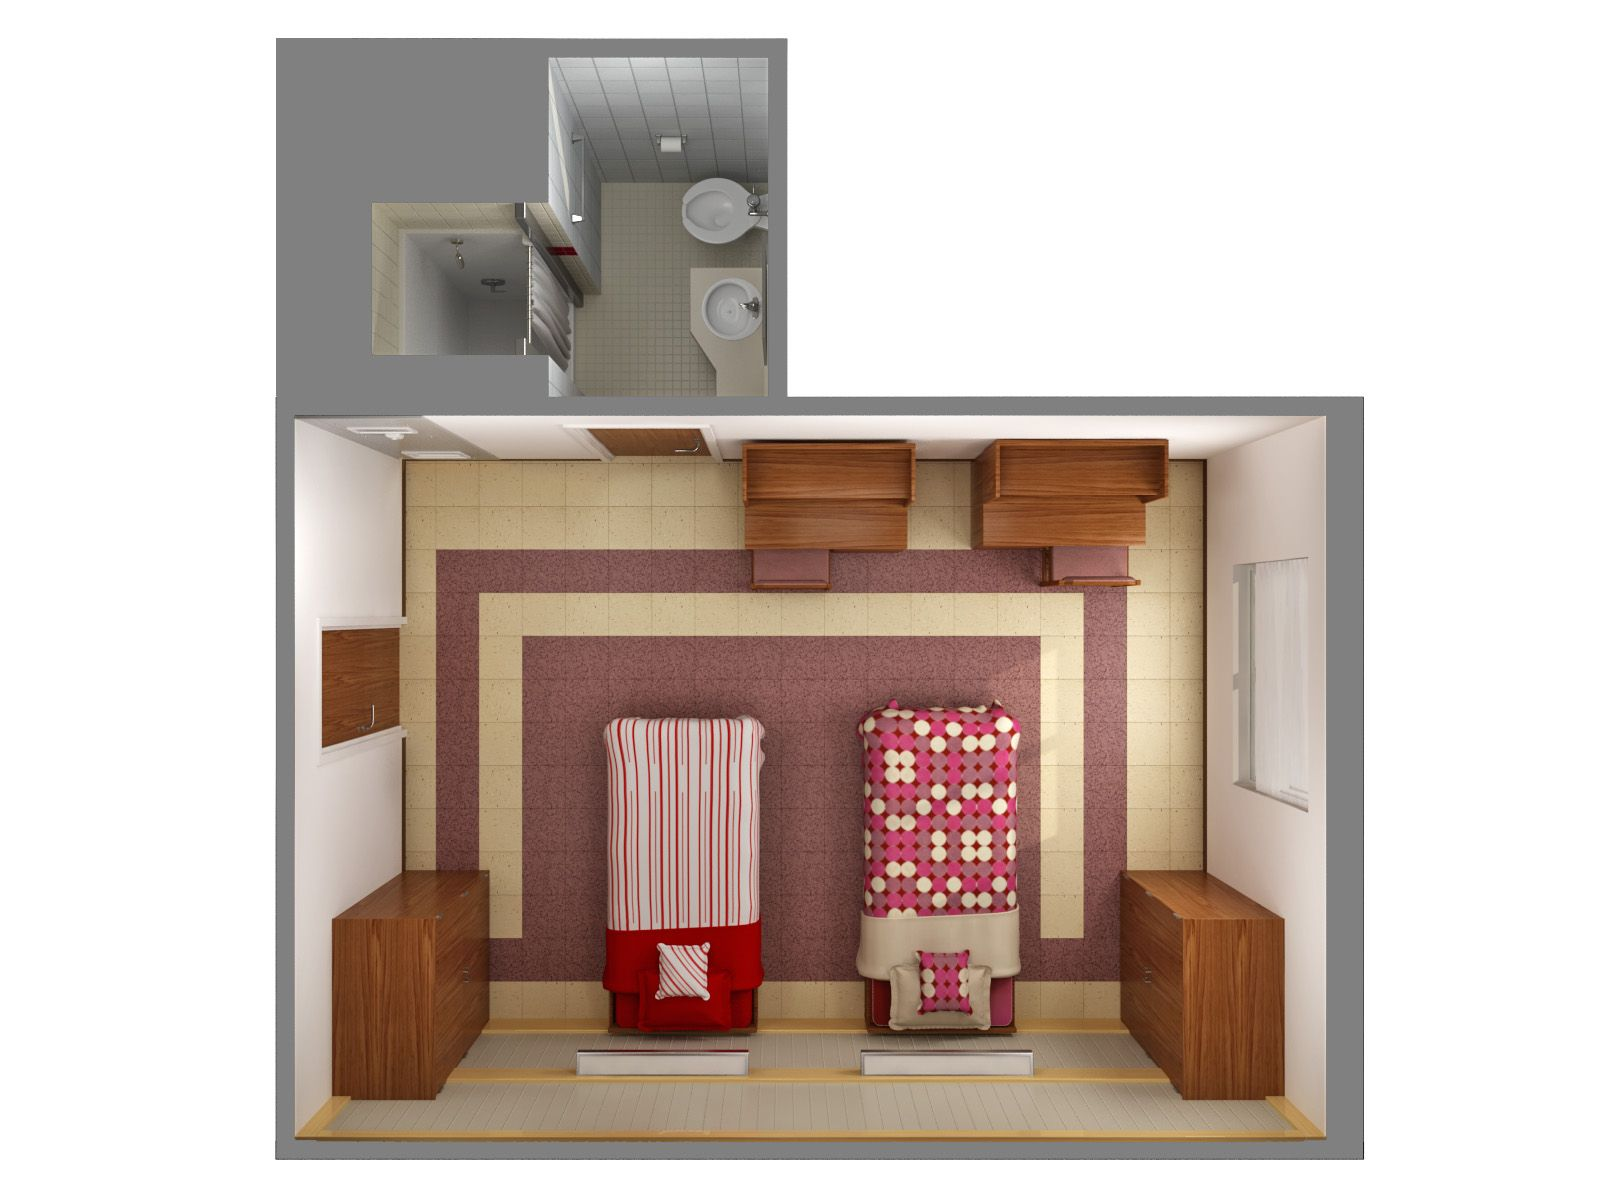 Design Your Own Bedroom Online For Free Build Your Own House Plans Online Free Kerala Design Image